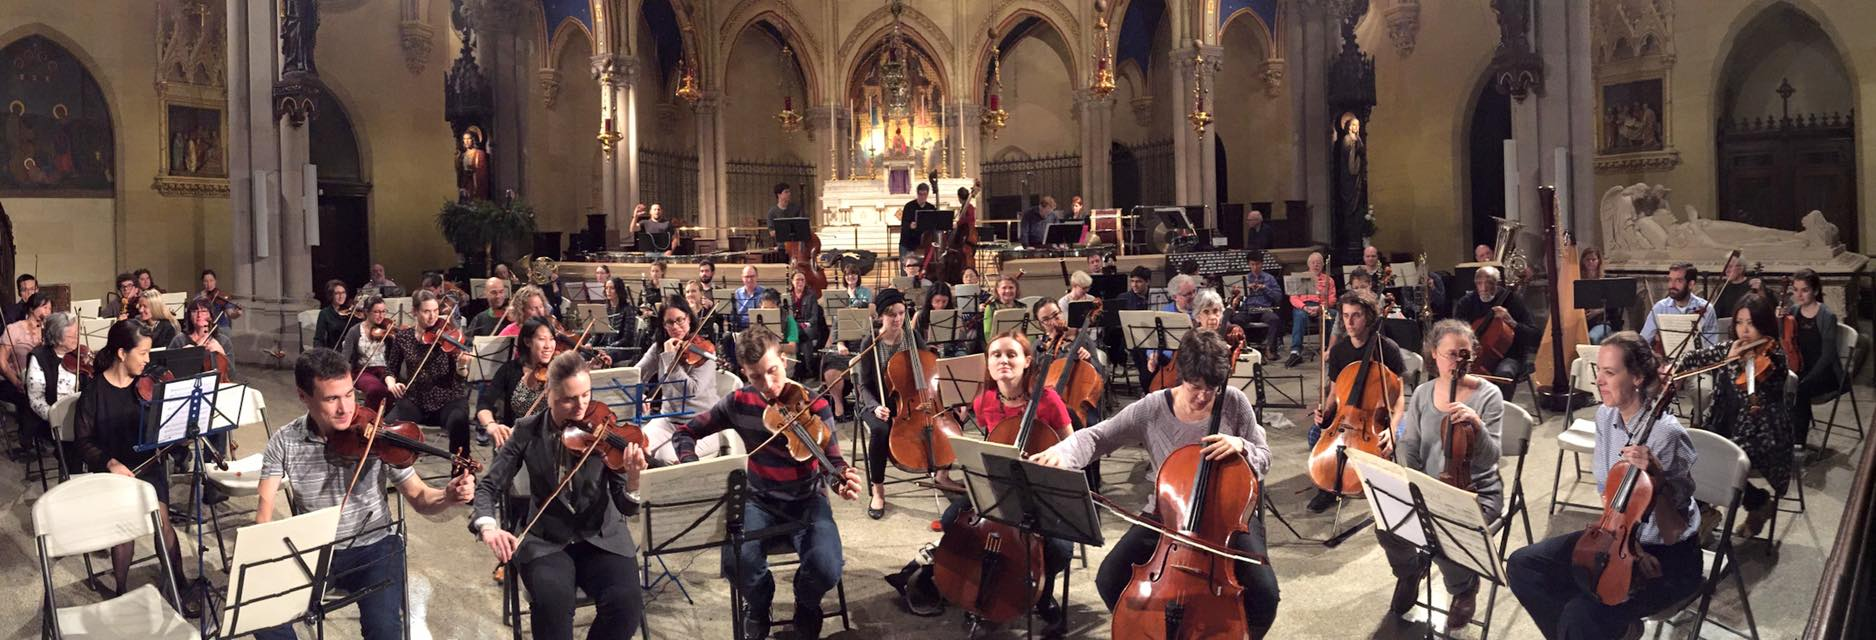 The New York Repertory Orchestra rehearsing at Saint Mary's - Photo by David Leibowitz